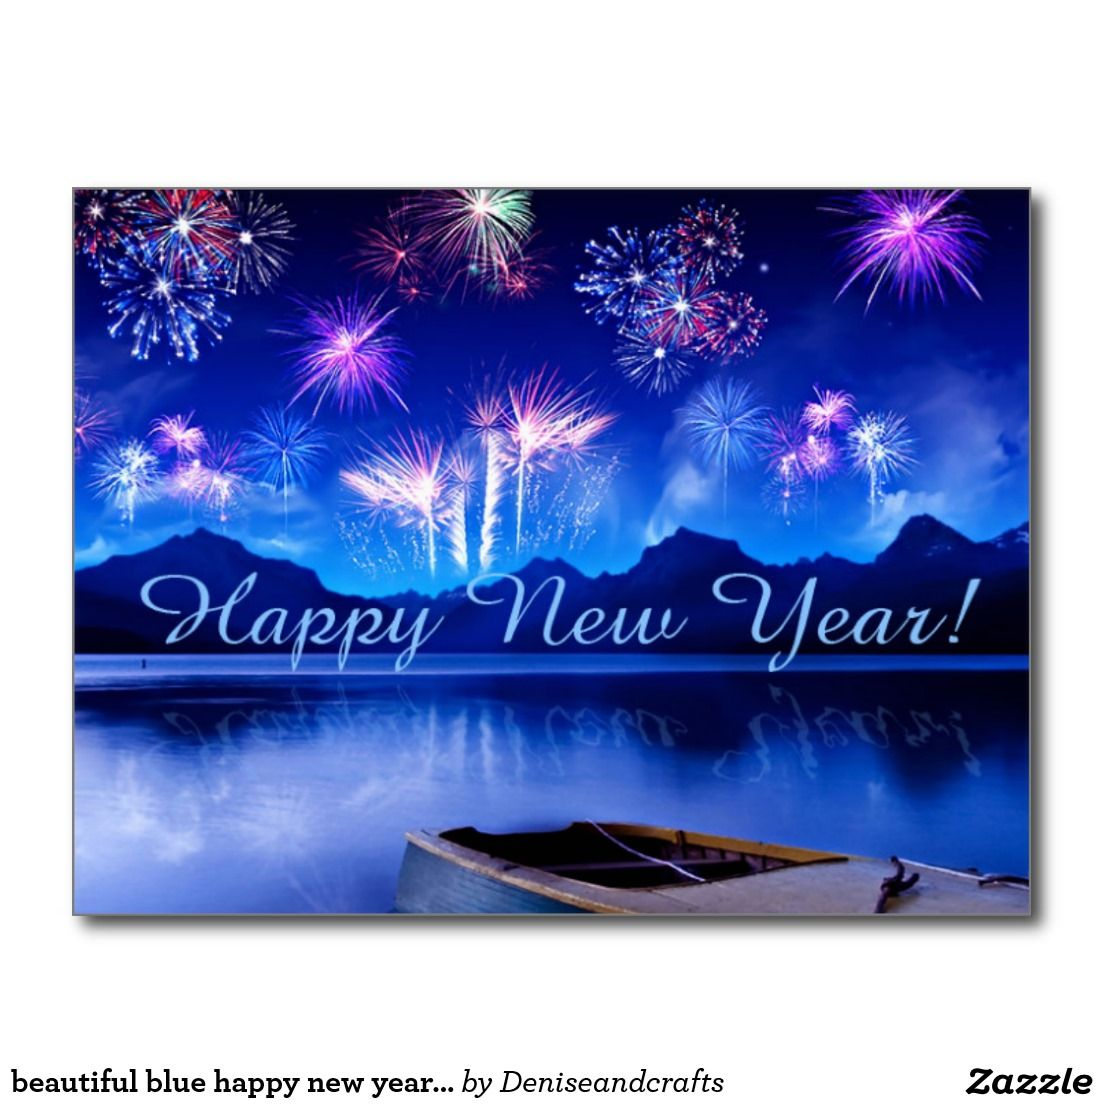 Beautiful Blue Happy New Year Postcard Zazzle Com In 2021 Happy New Year Wallpaper Happy New Year Hd New Year Images